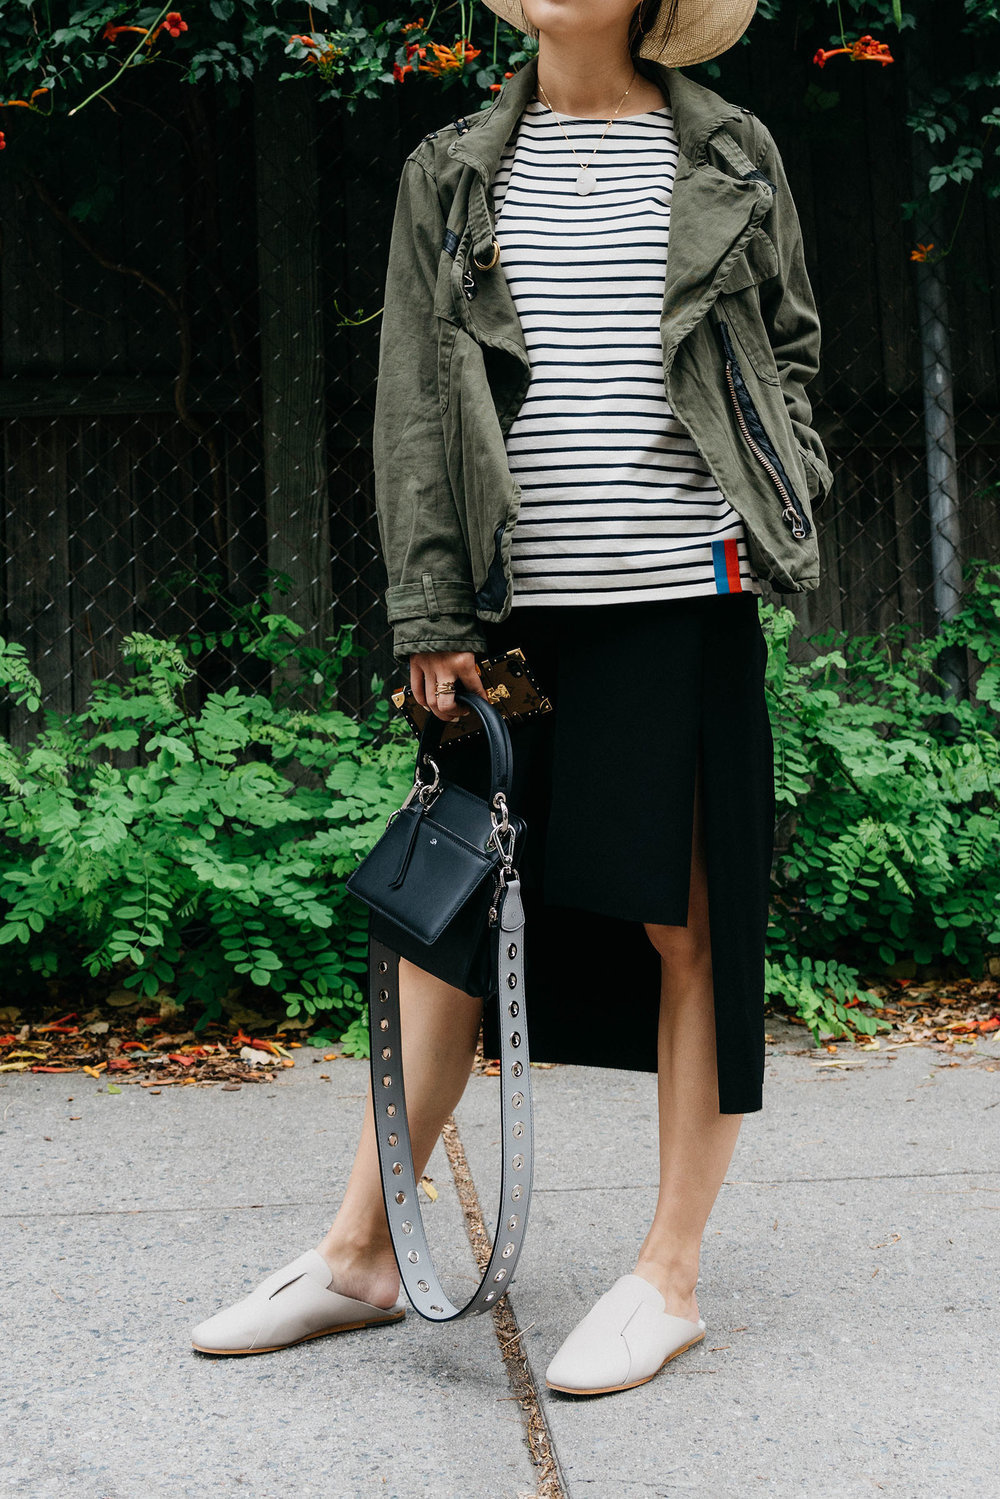 NSF Jacket, Kule Stripes Top, COS Skirt and Shoes, 324 New York Bag and Strap